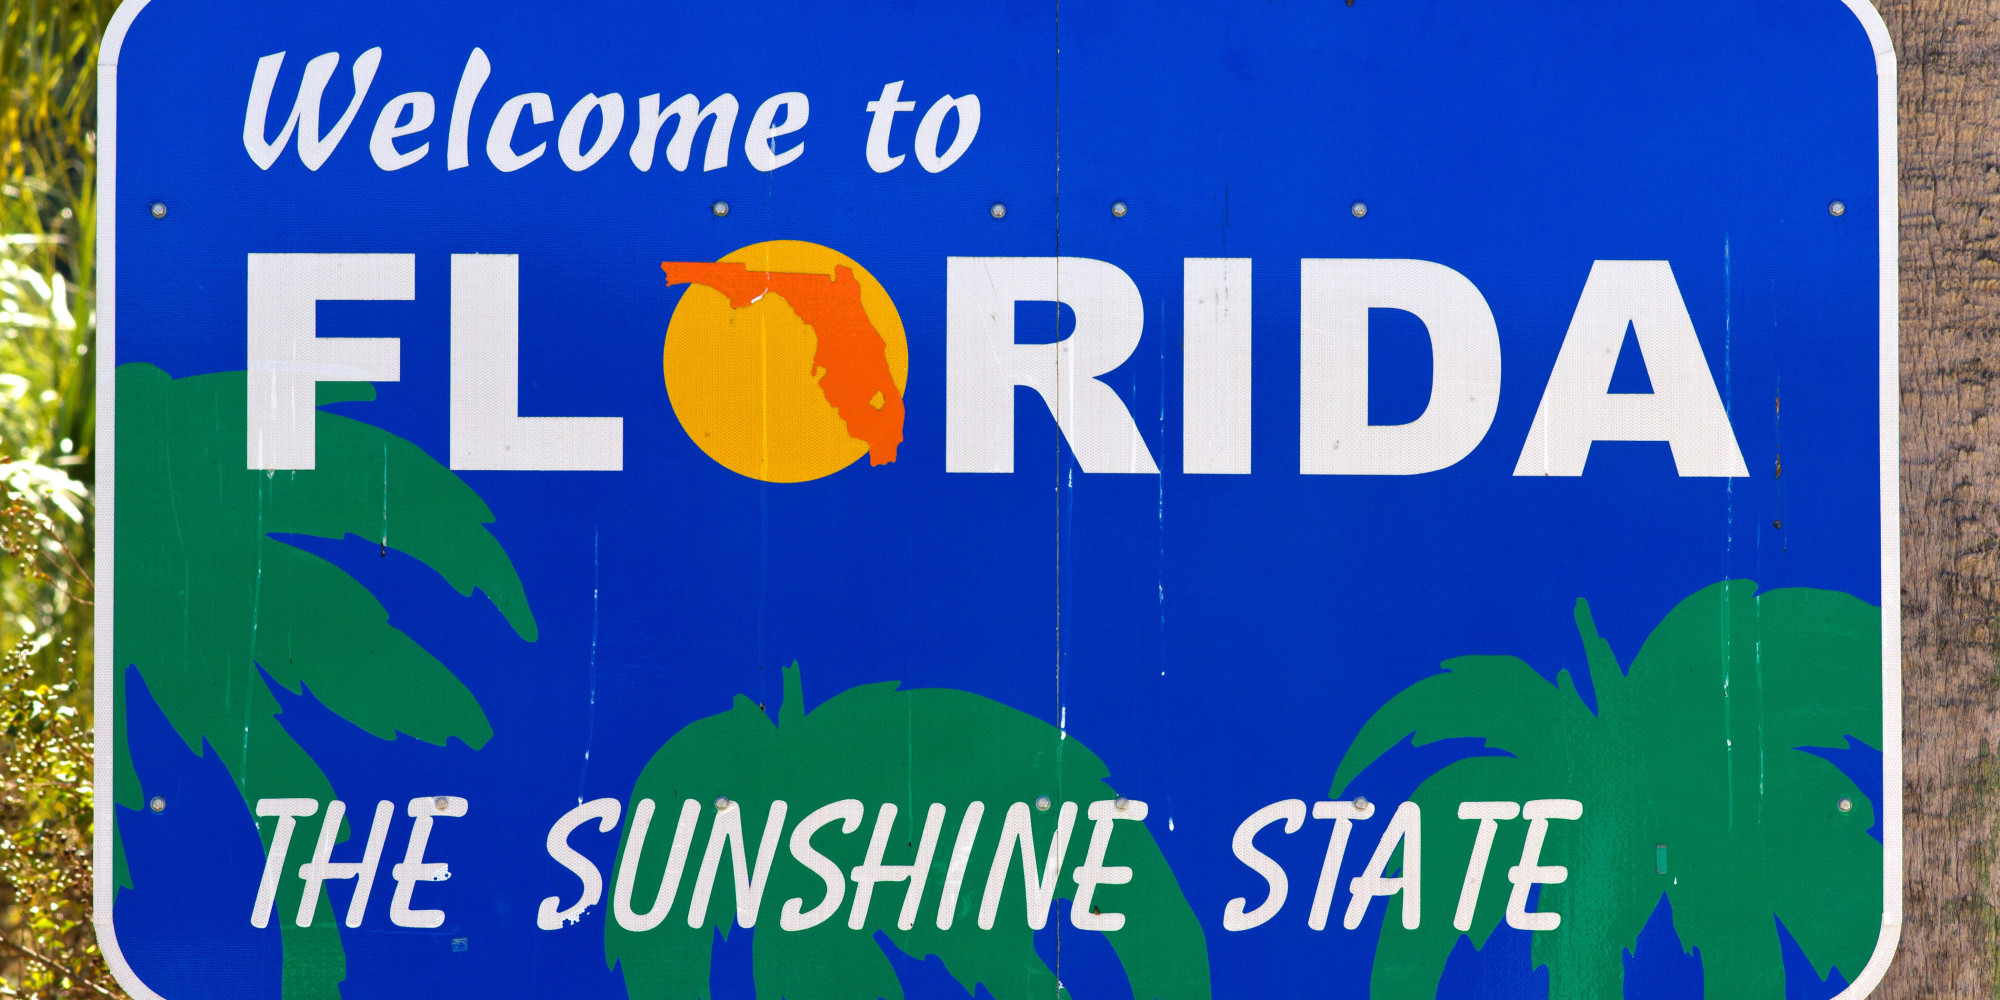 Welcome To Florida You Re More Likely To Here